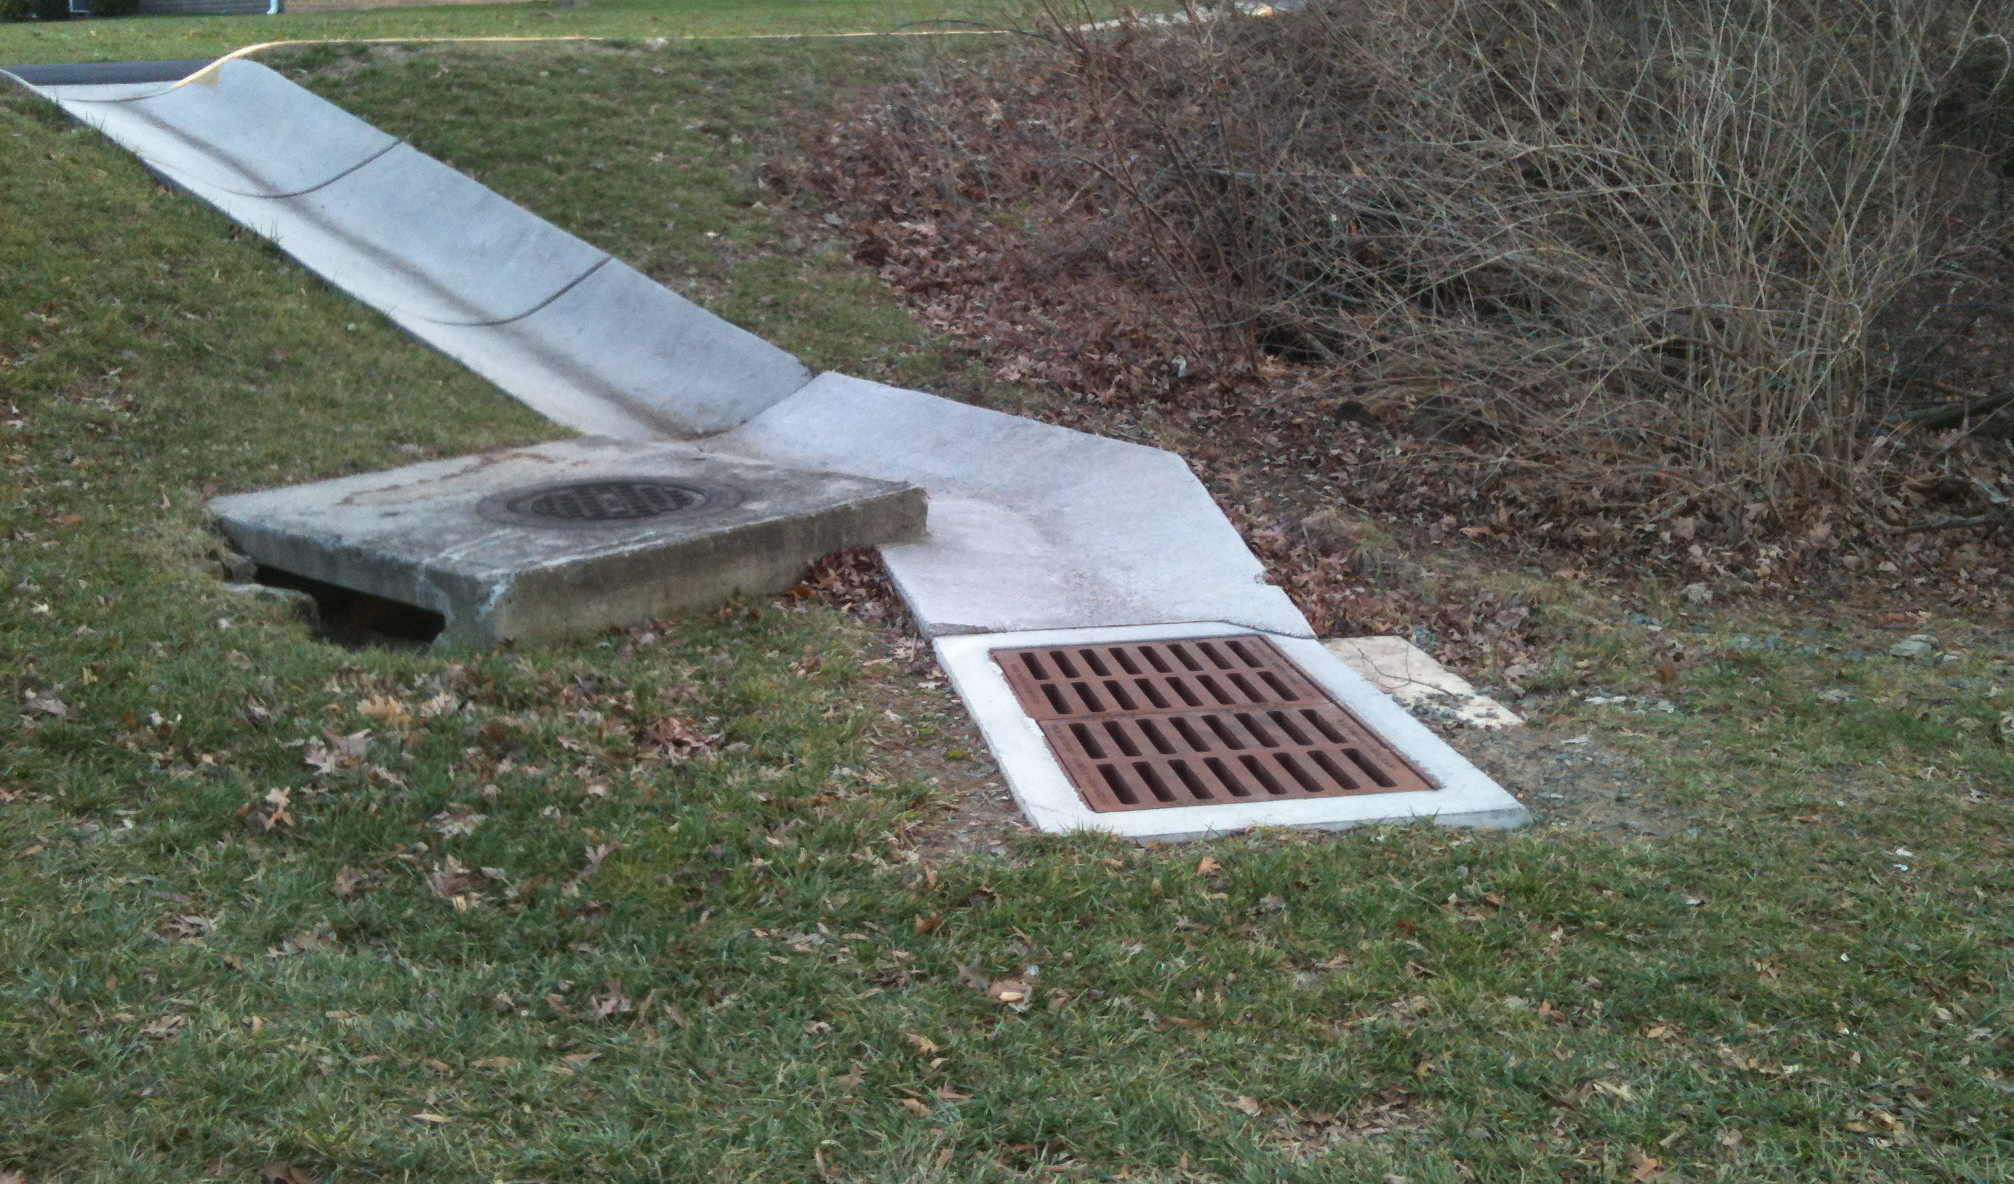 storm drain the squirrel nutwork